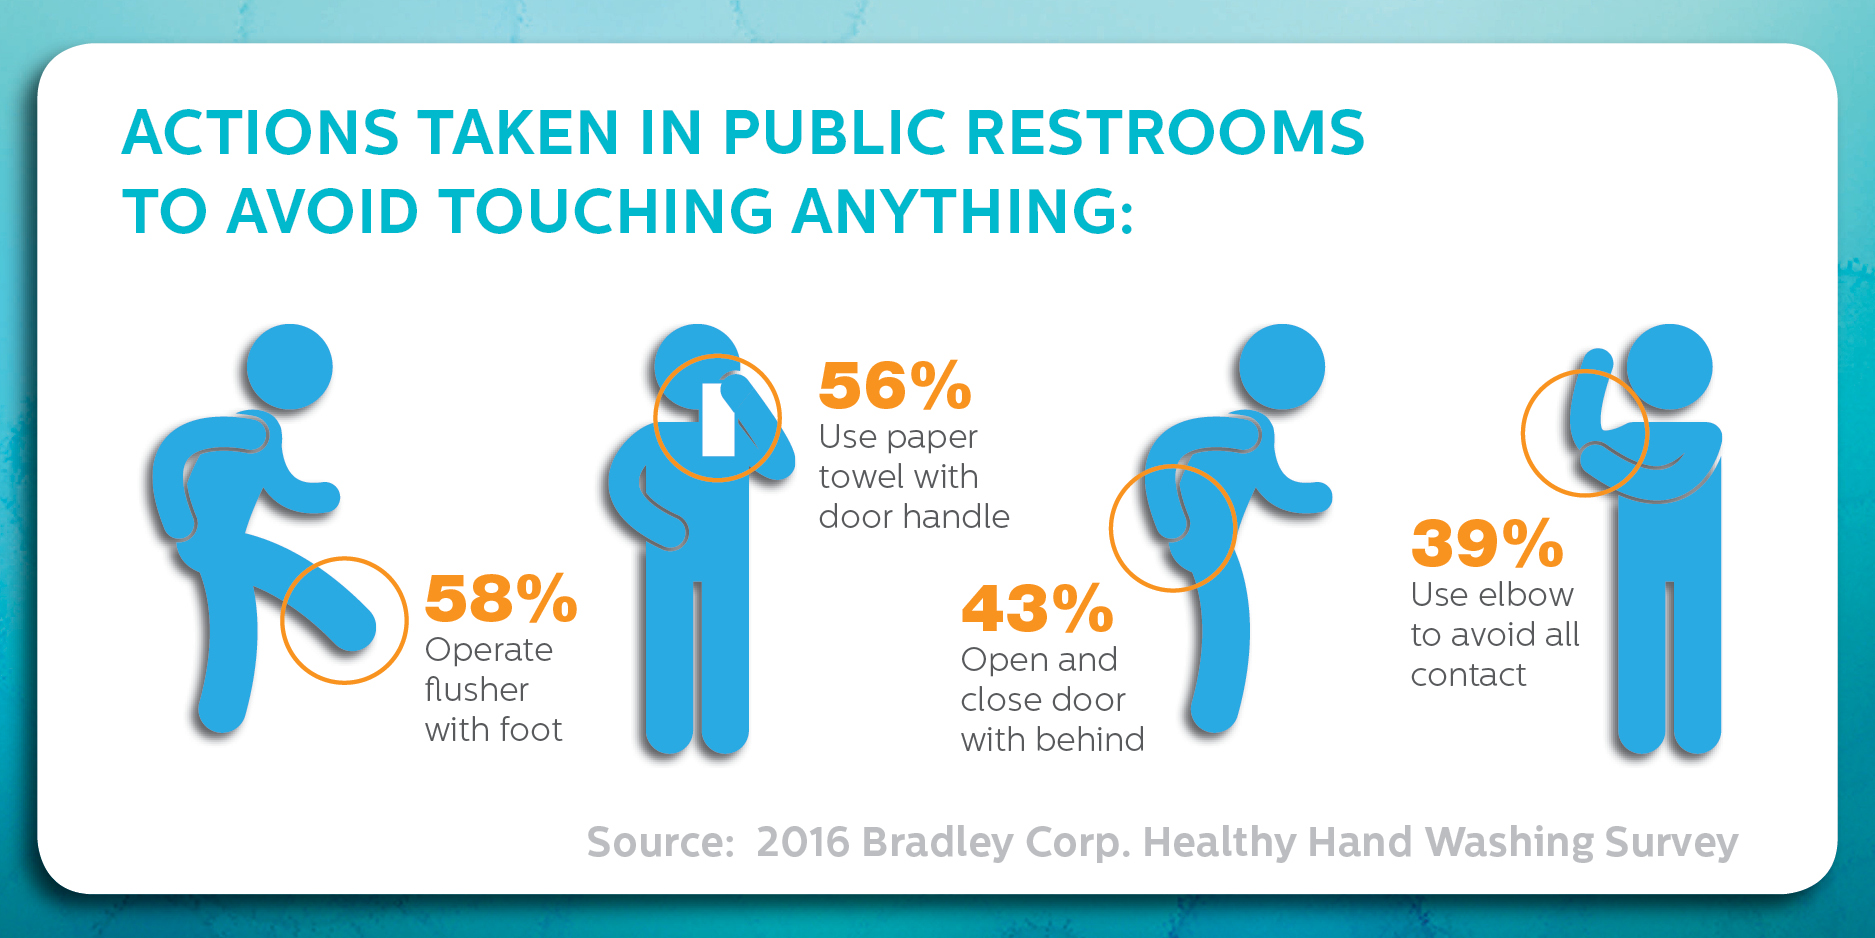 How do you avoid germs in a public restroom? 64% operate flusher with foot. 60% use paper towel with door handle. 48% open and close door with behind. 36% use elbow to avoid all contact